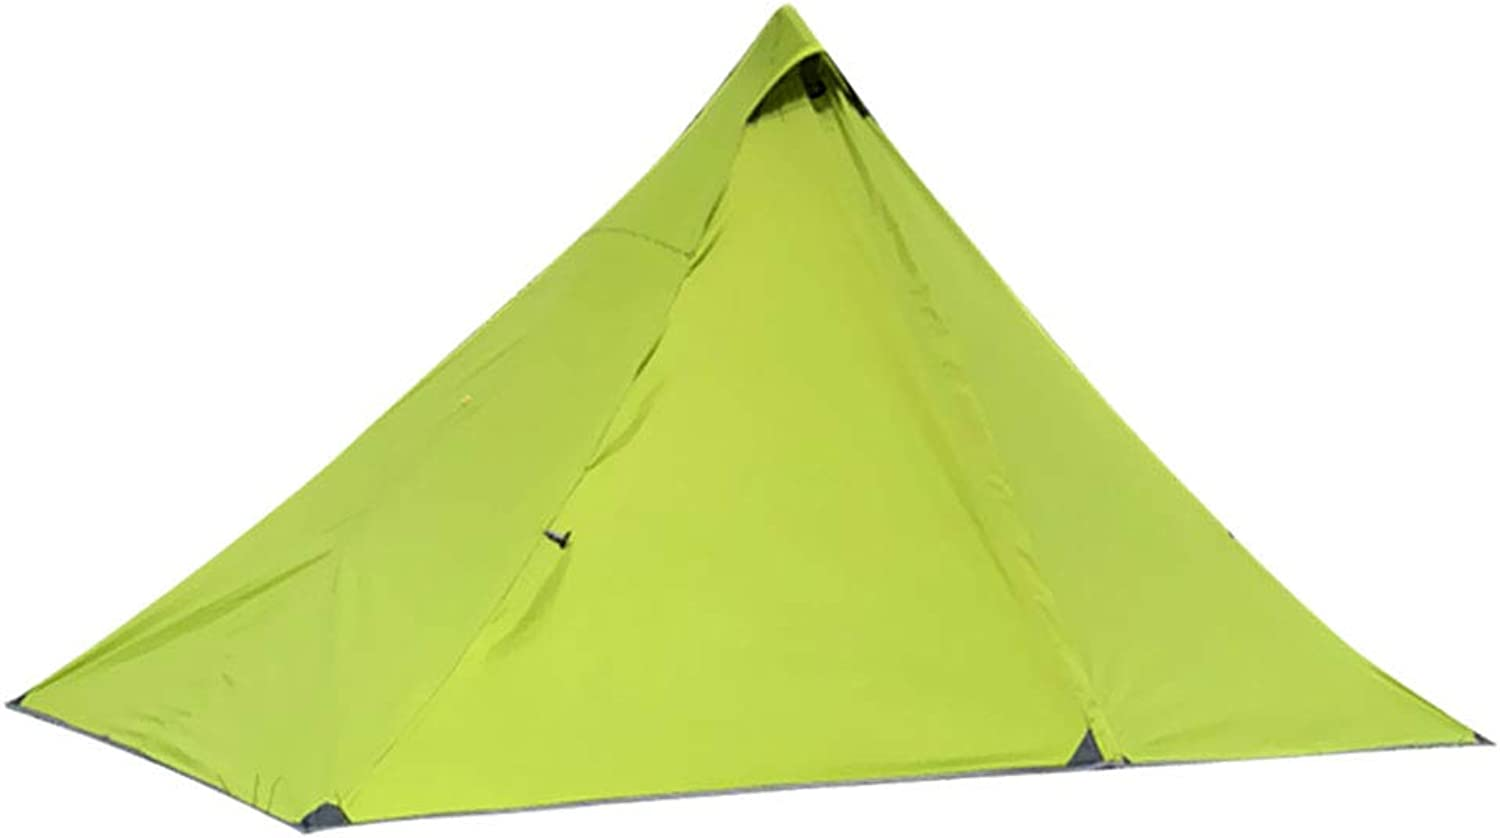 Baosity 1 Person Pyramid Tent Backpacking Lightweight Single Waterproof with Double Layer for Mountaineering Hiking Camping